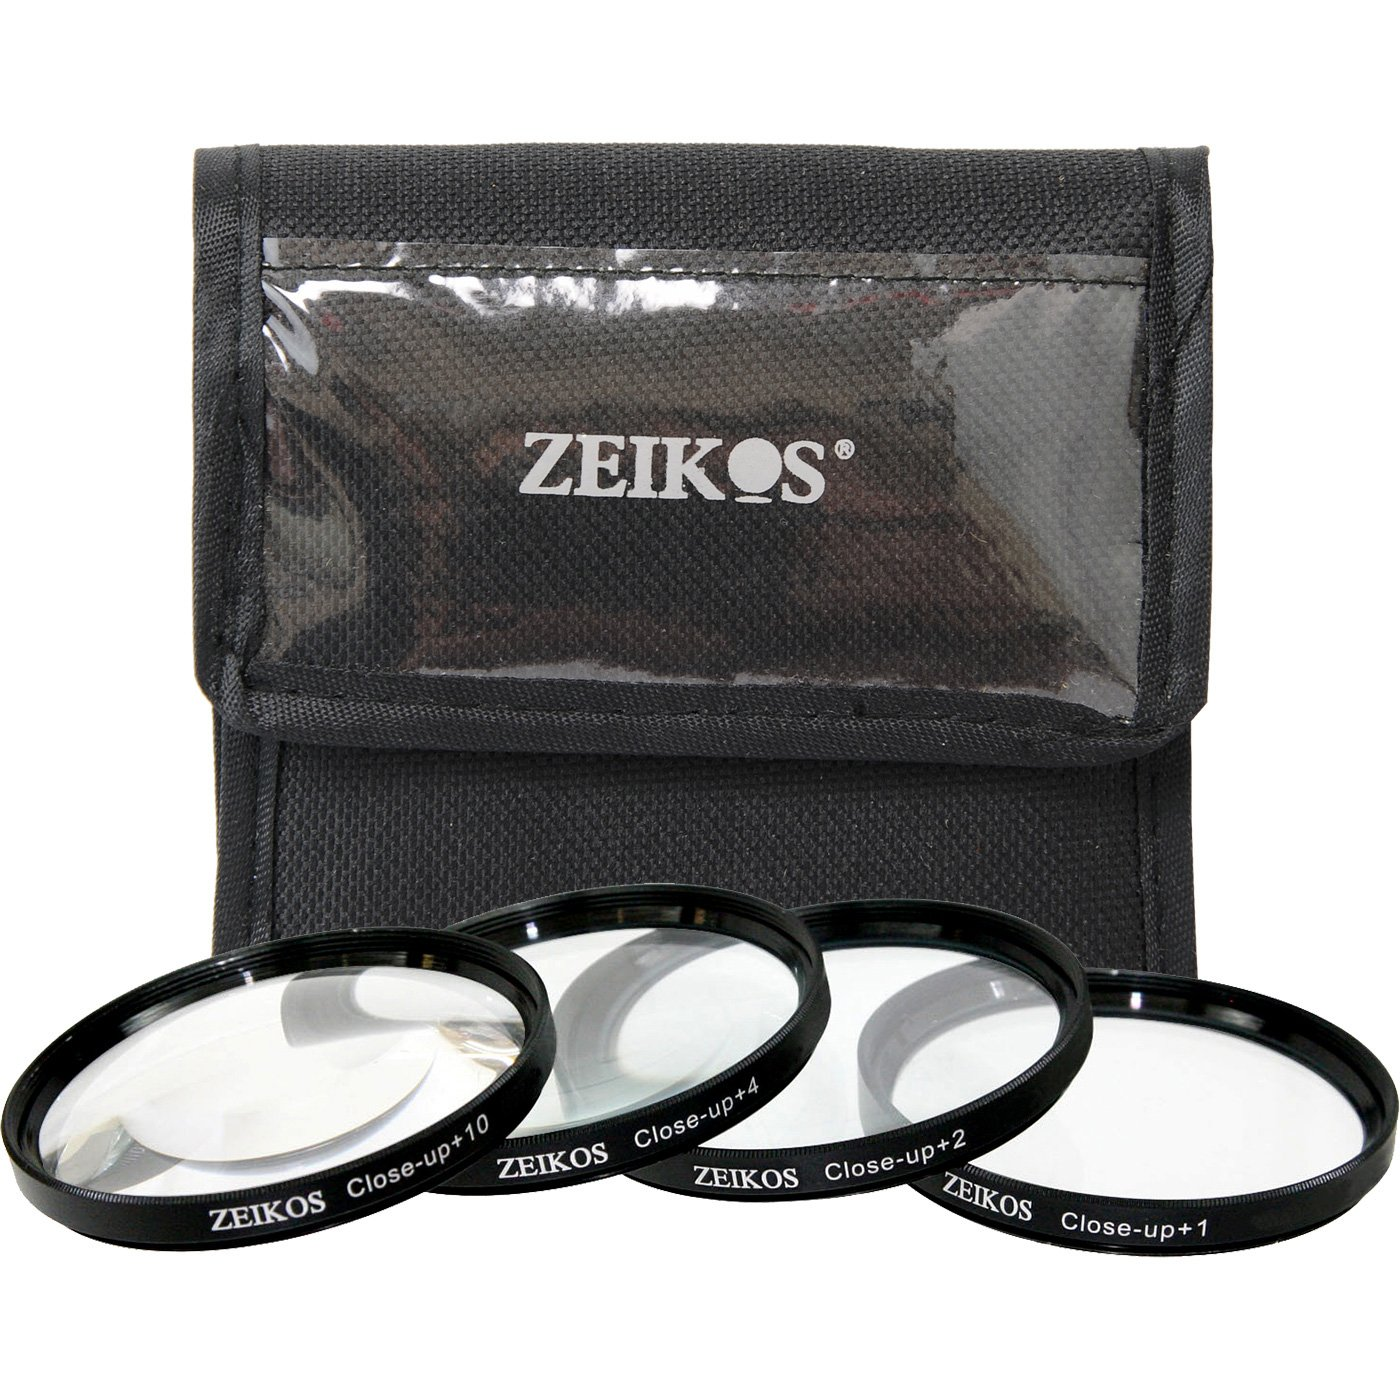 Zeikos 52mm 4 Piece High Definition Close-Up Filter Set, 1, 2, 4 and +10 Diopters Magnification Kit - Metal Rim, Includes Deluxe Case ZE-CU452